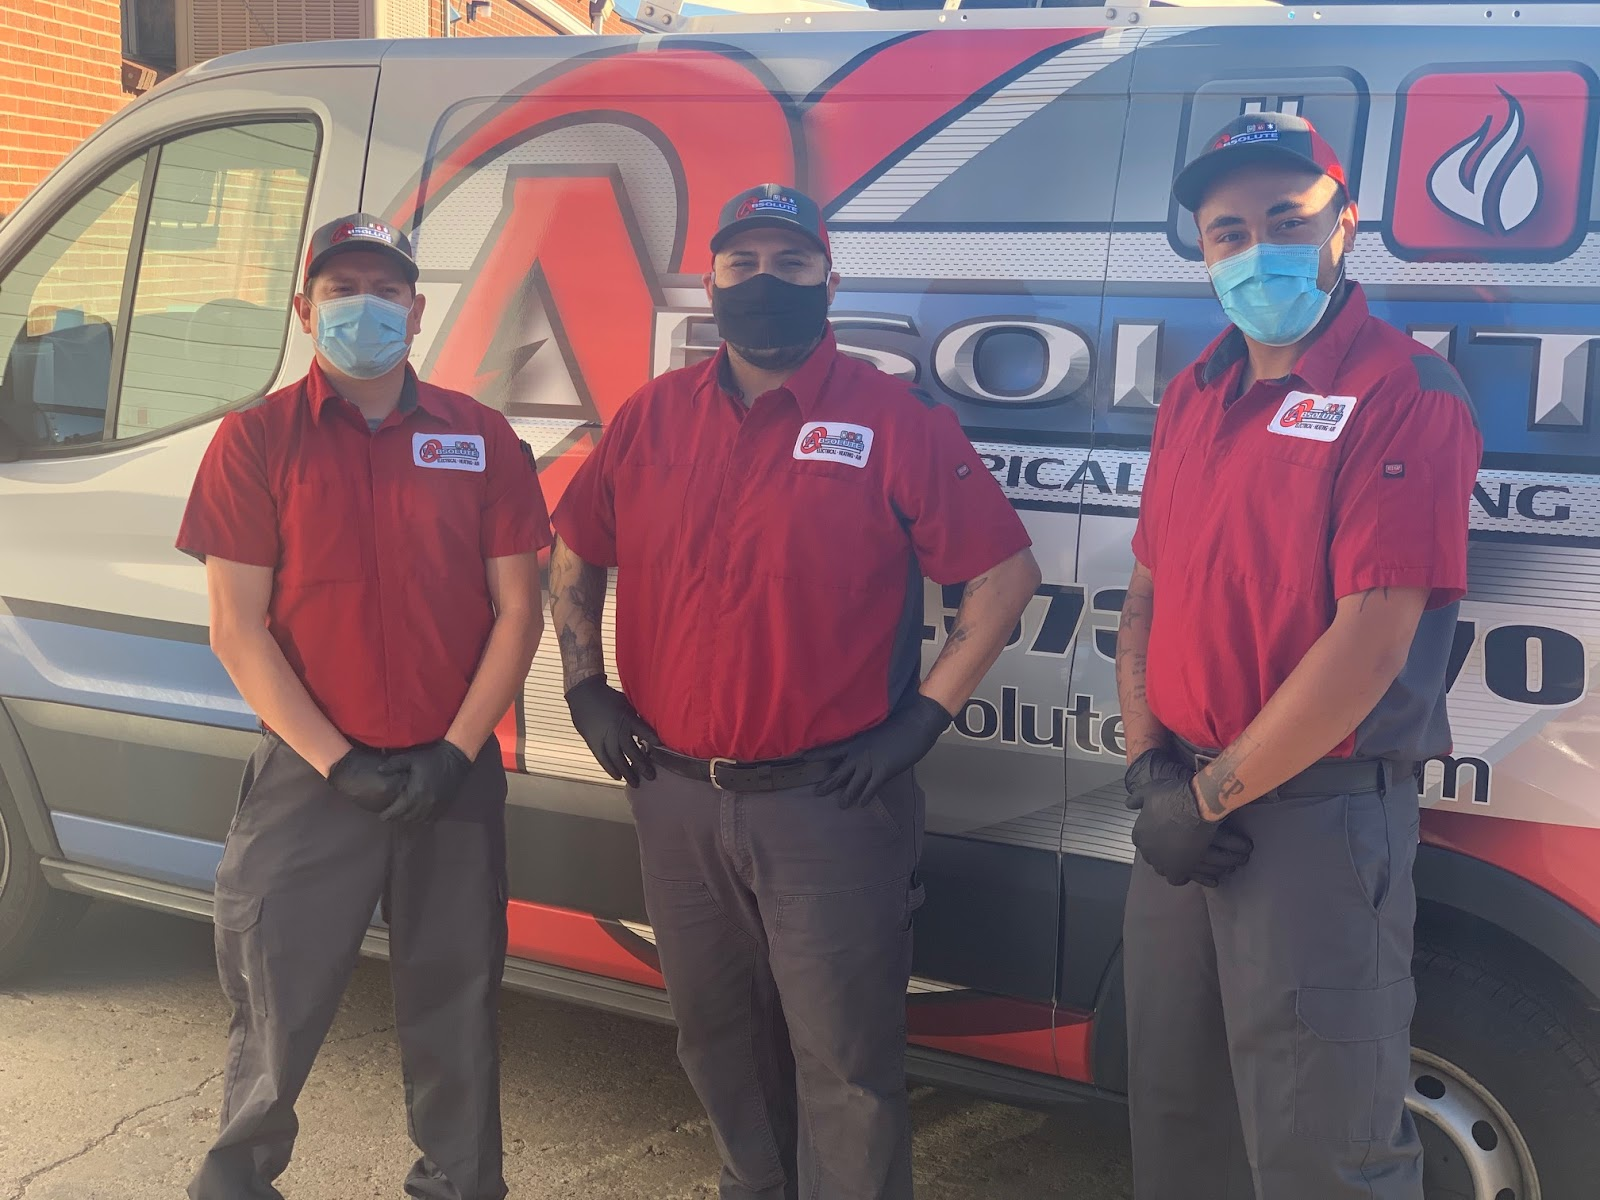 three electrical/HVAC techs in red shirts, grey pants, hats, protective gloves, and face masks smile in front of Absolute vehicle